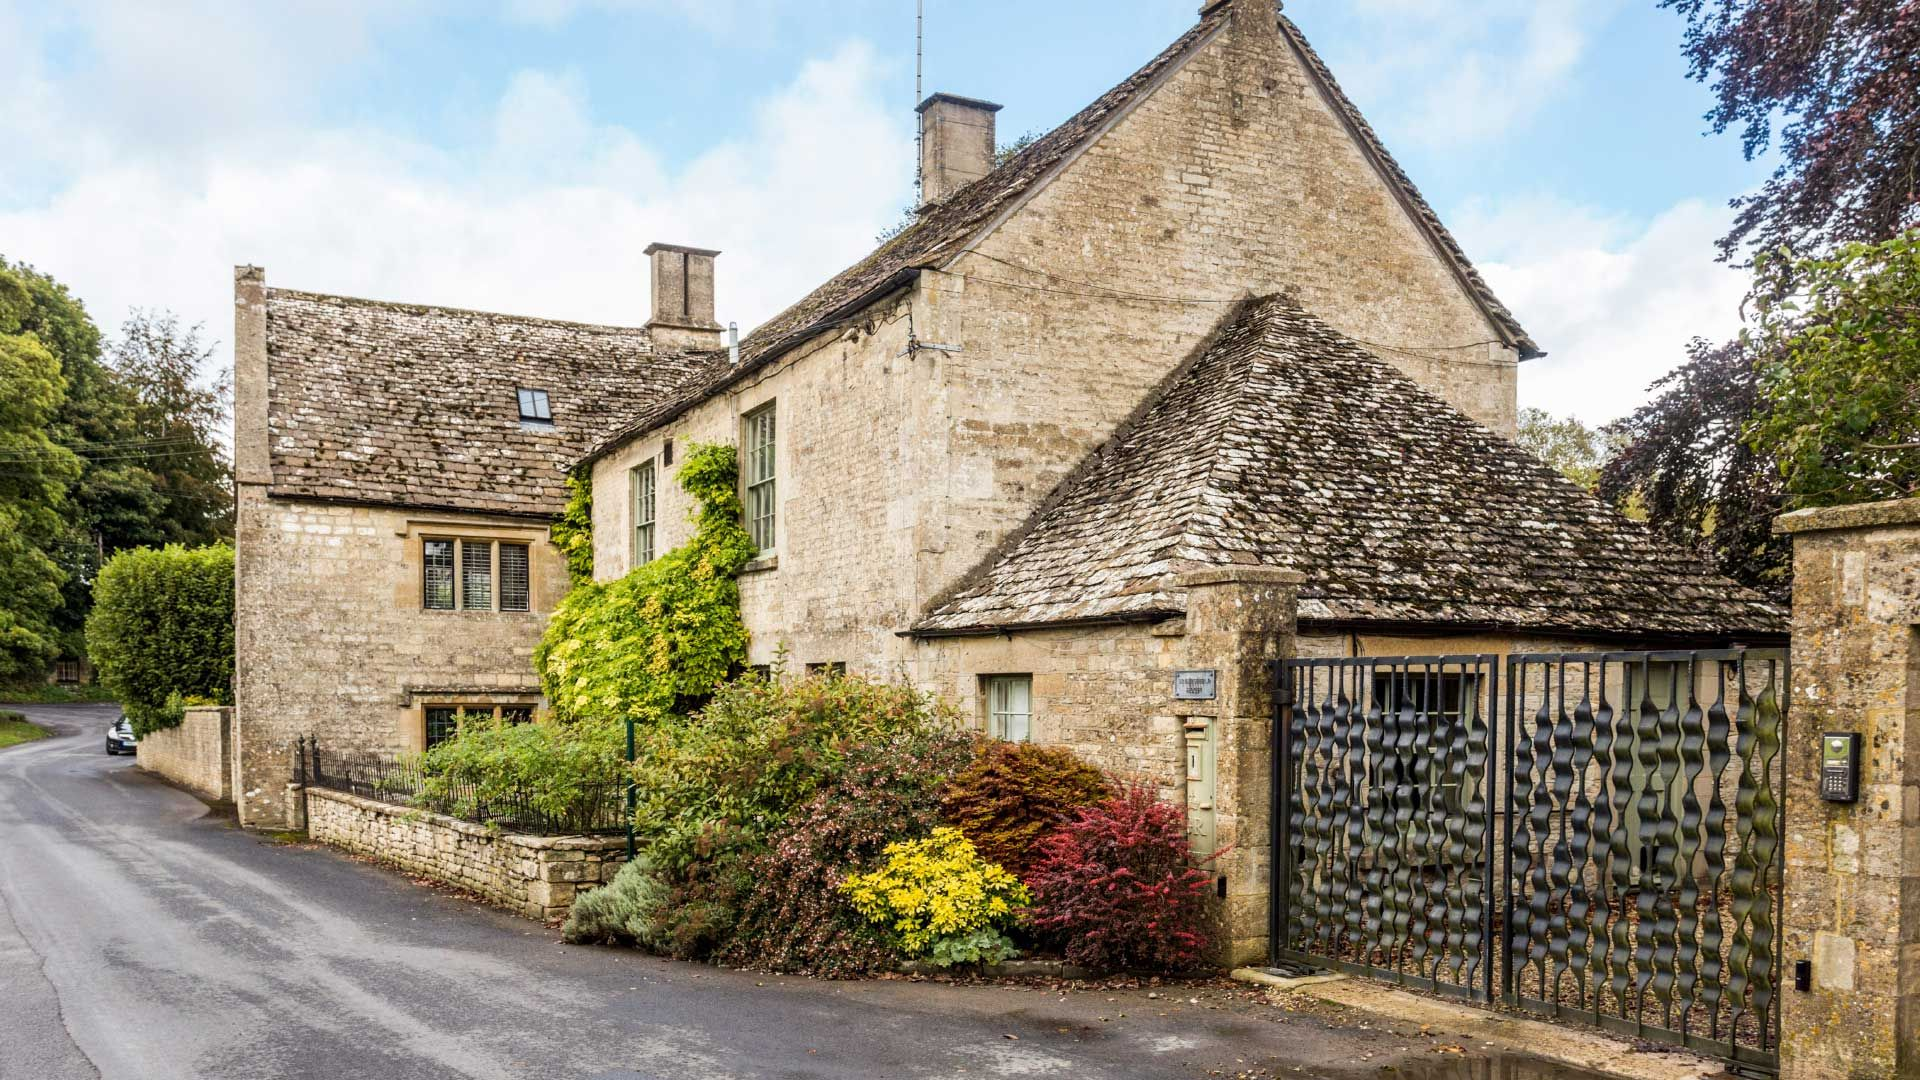 Brimpsfield House - StayCotswold